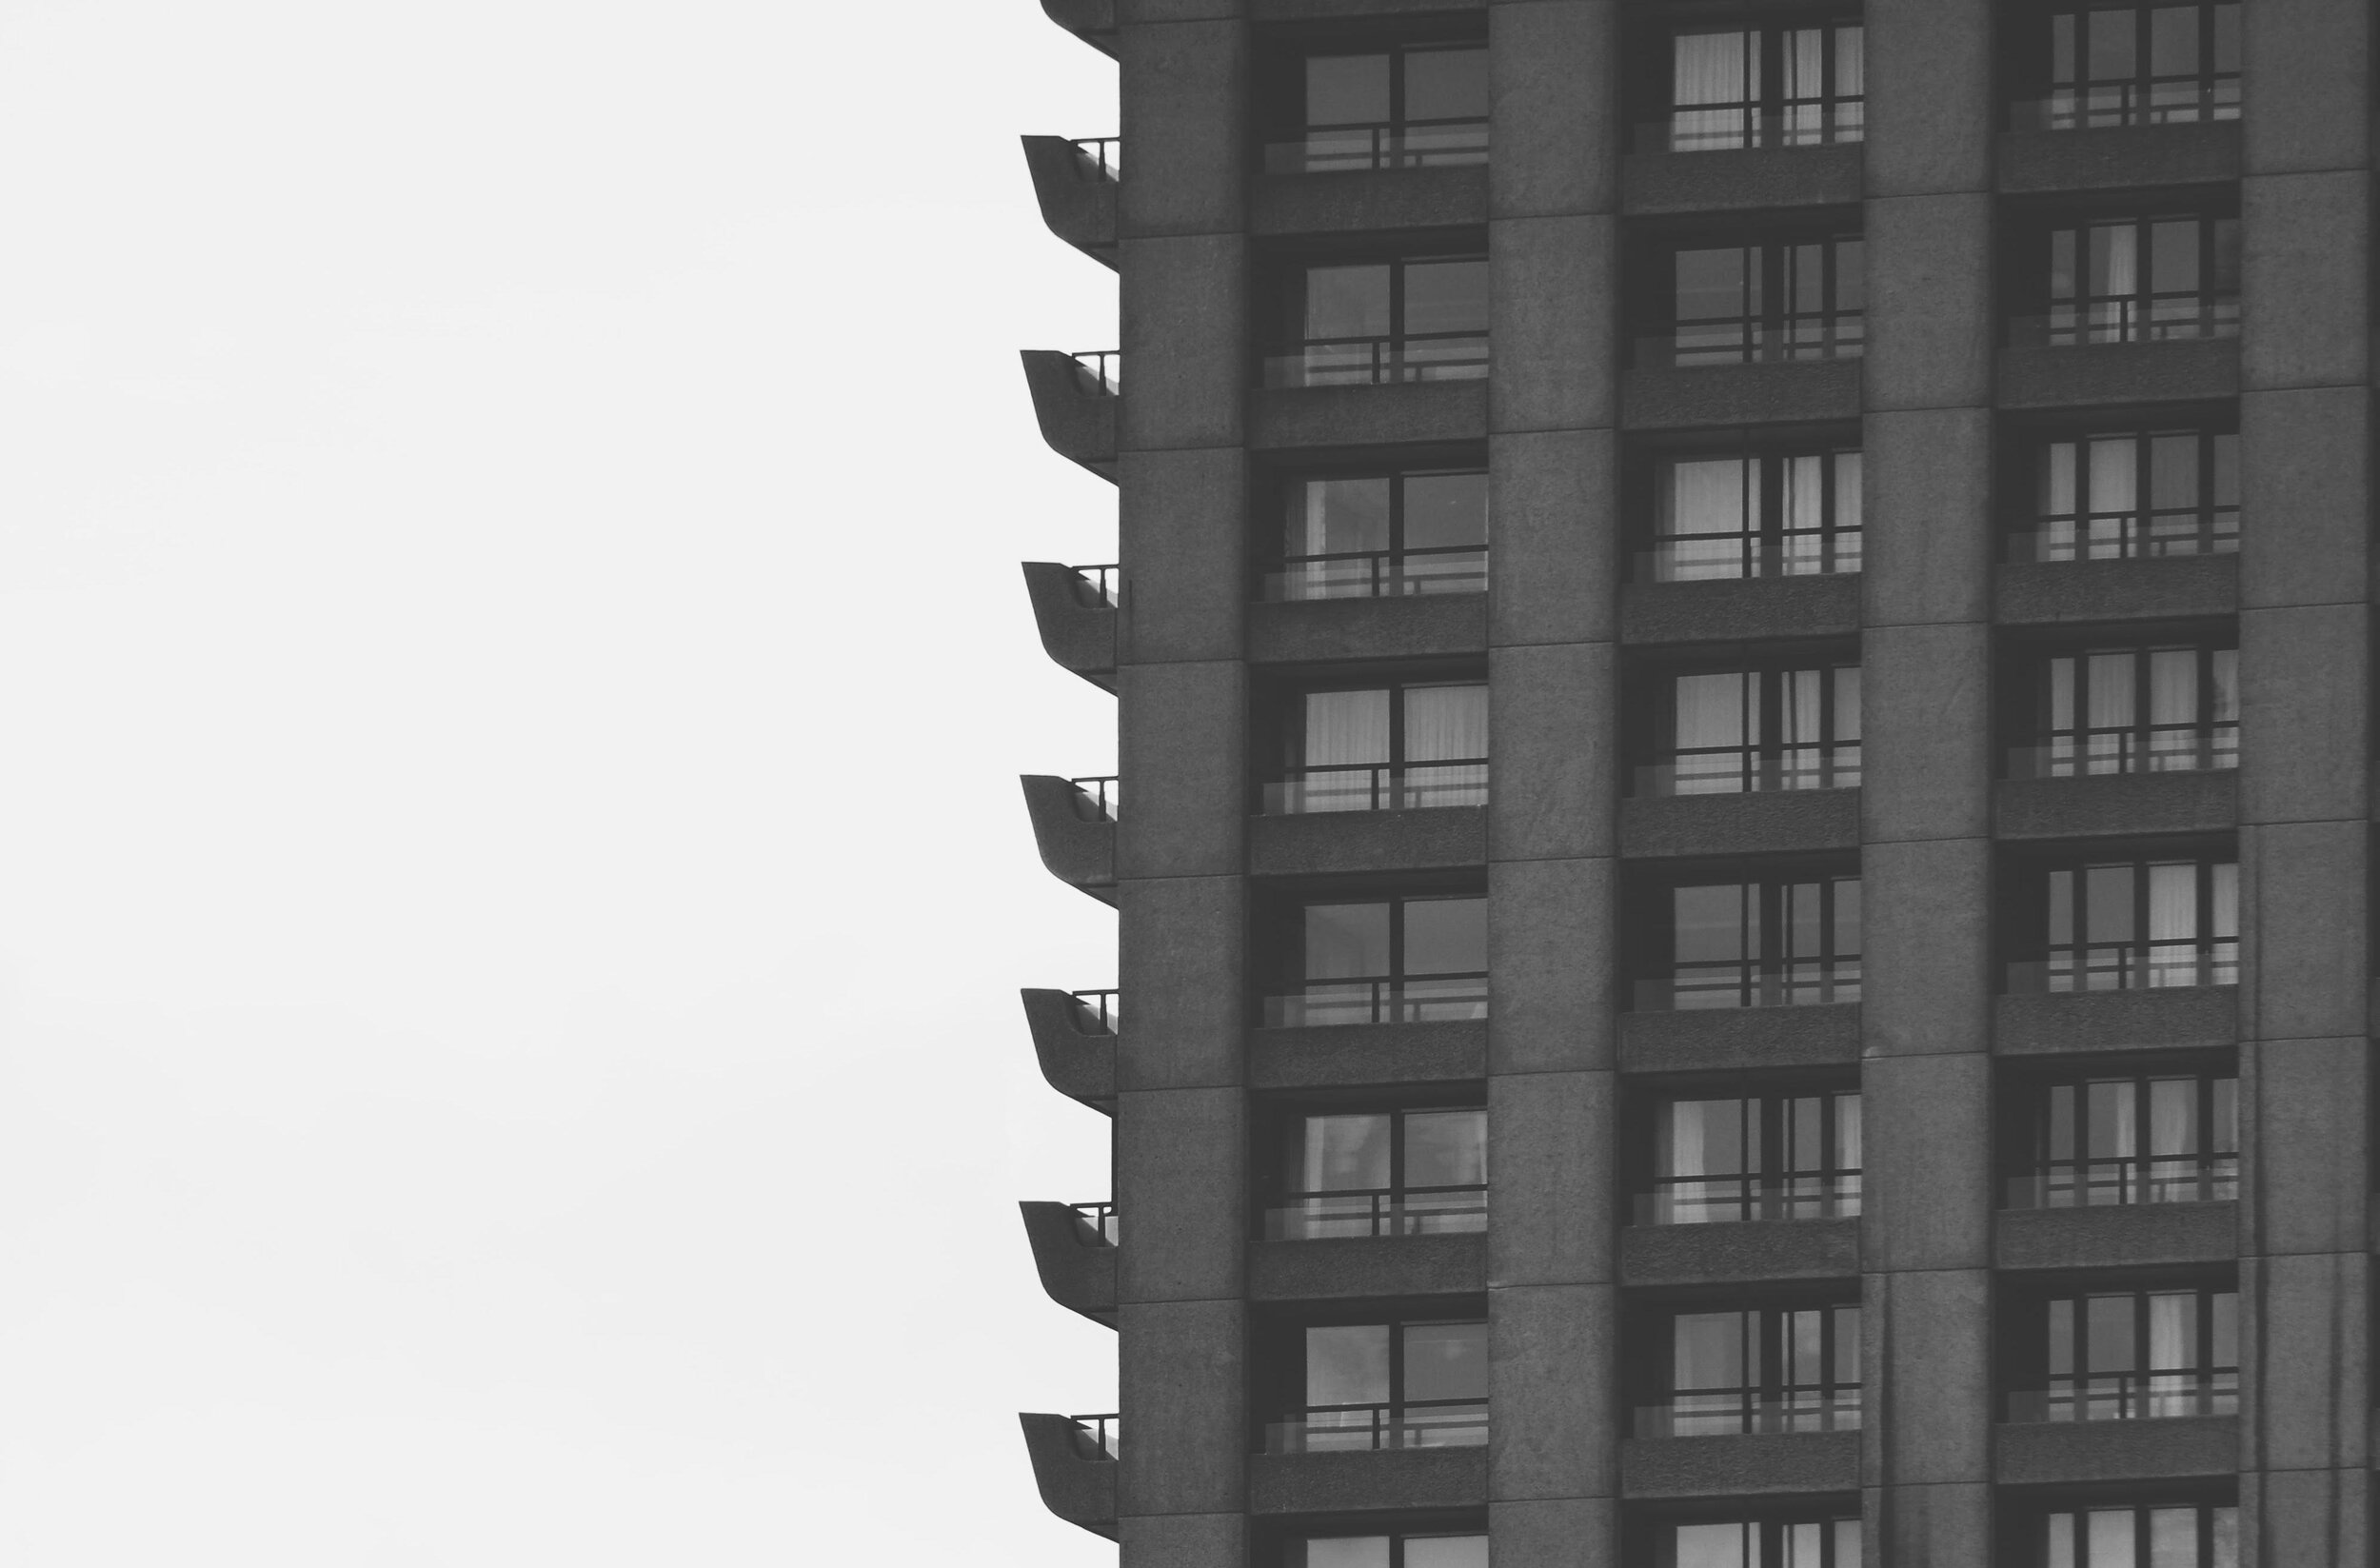 Barbican, London from THE WEST issue. Launching in November 2019.